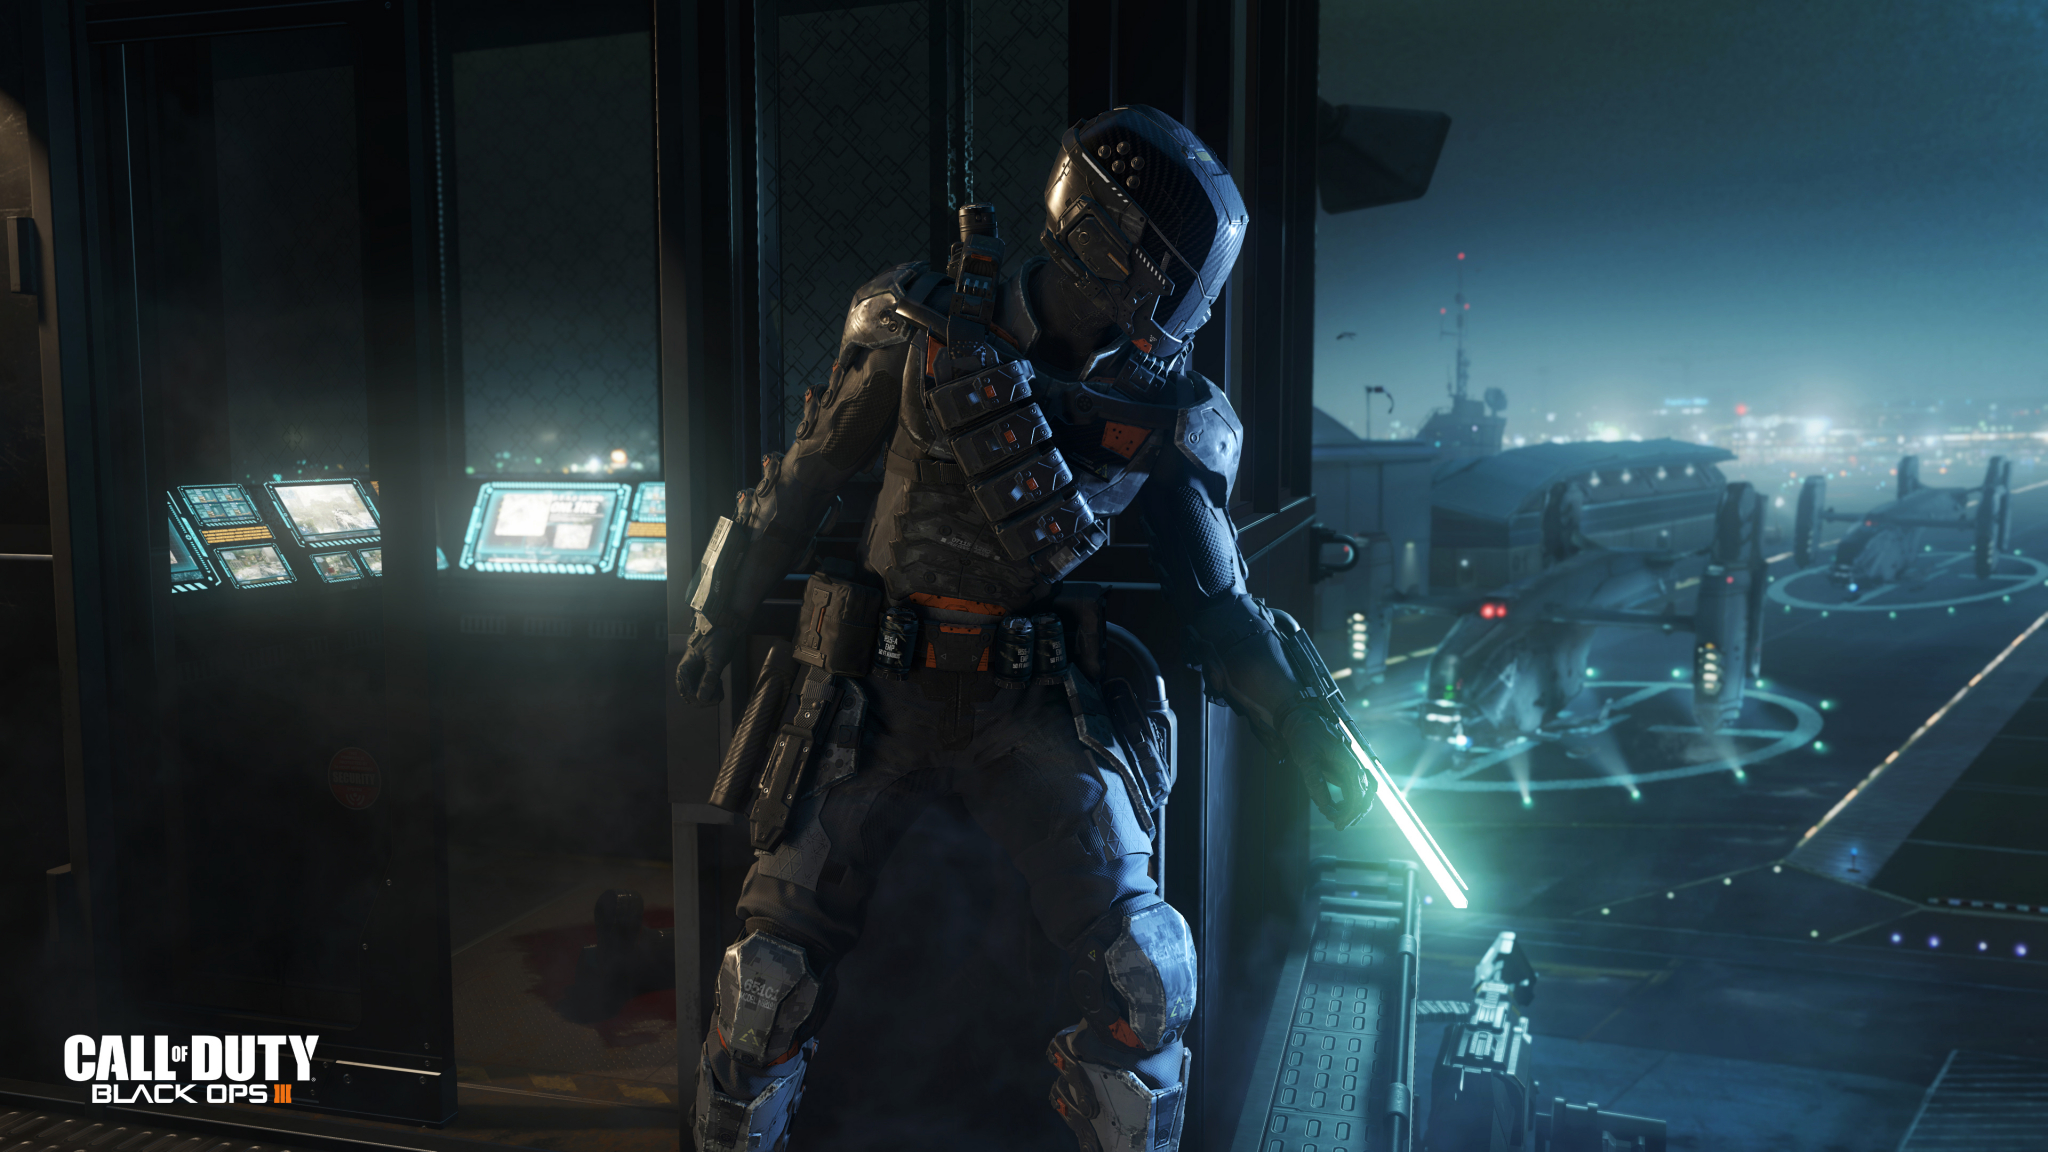 Call Of Duty Black Ops 3 Images